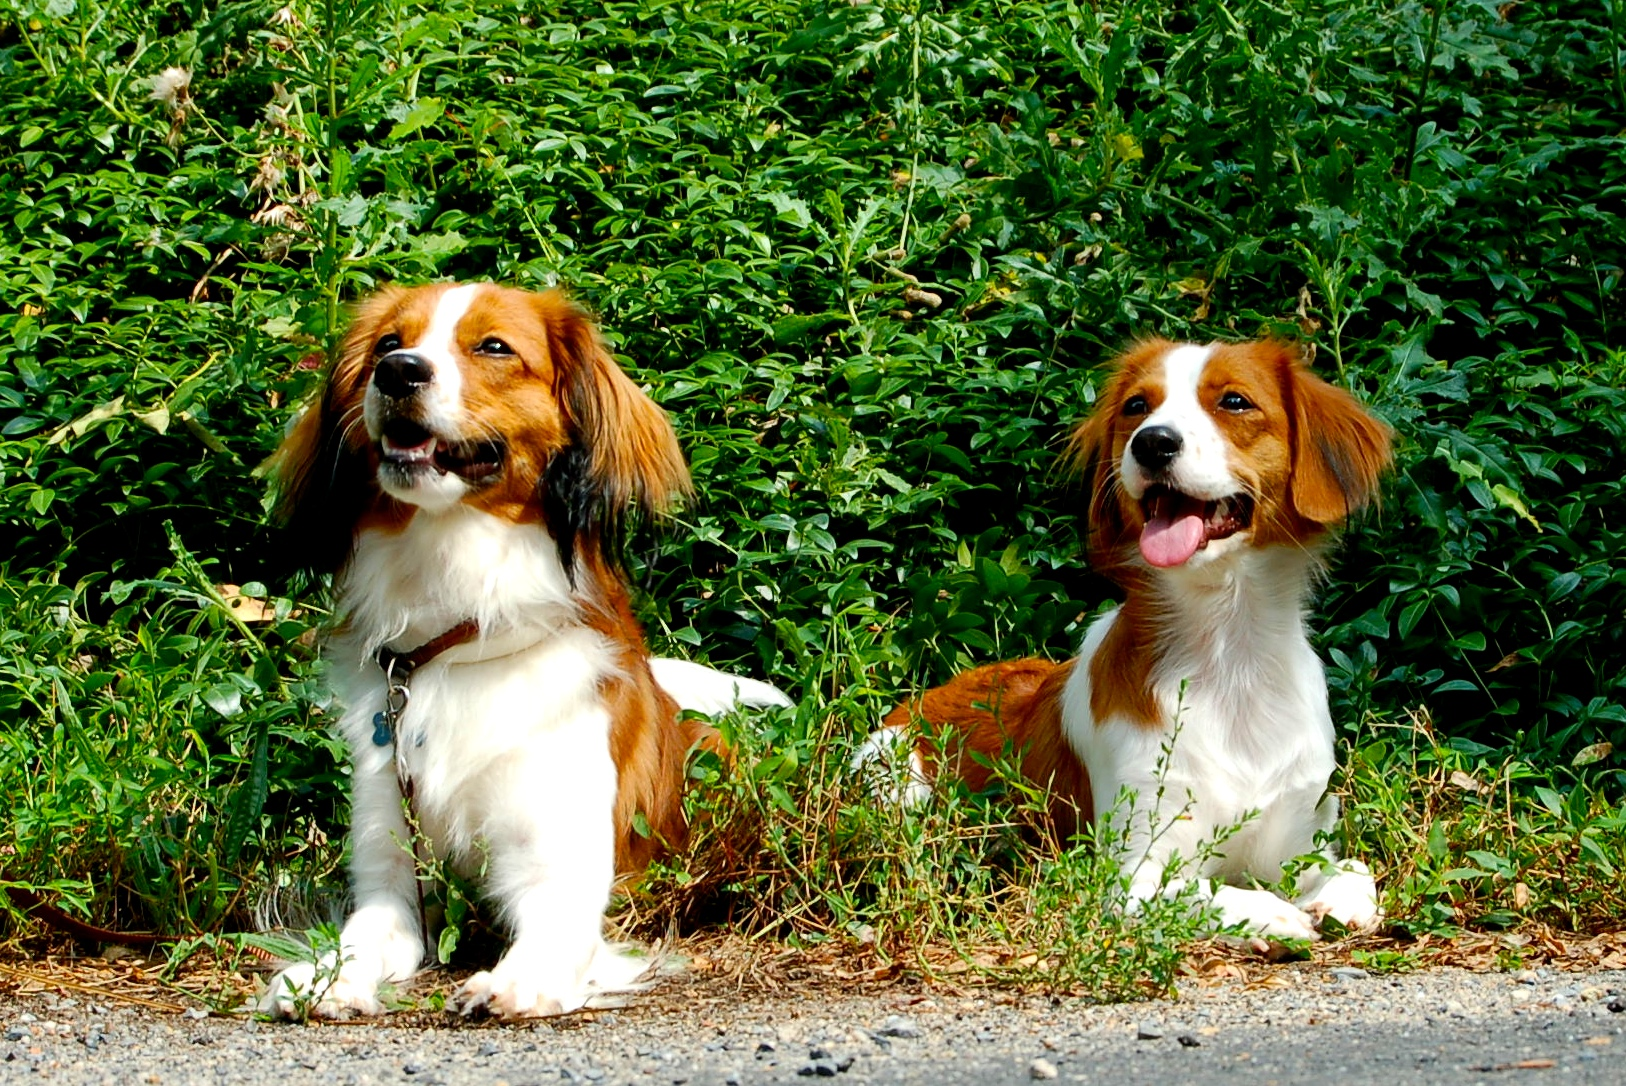 Two Kooikerhondje dogs wallpaper